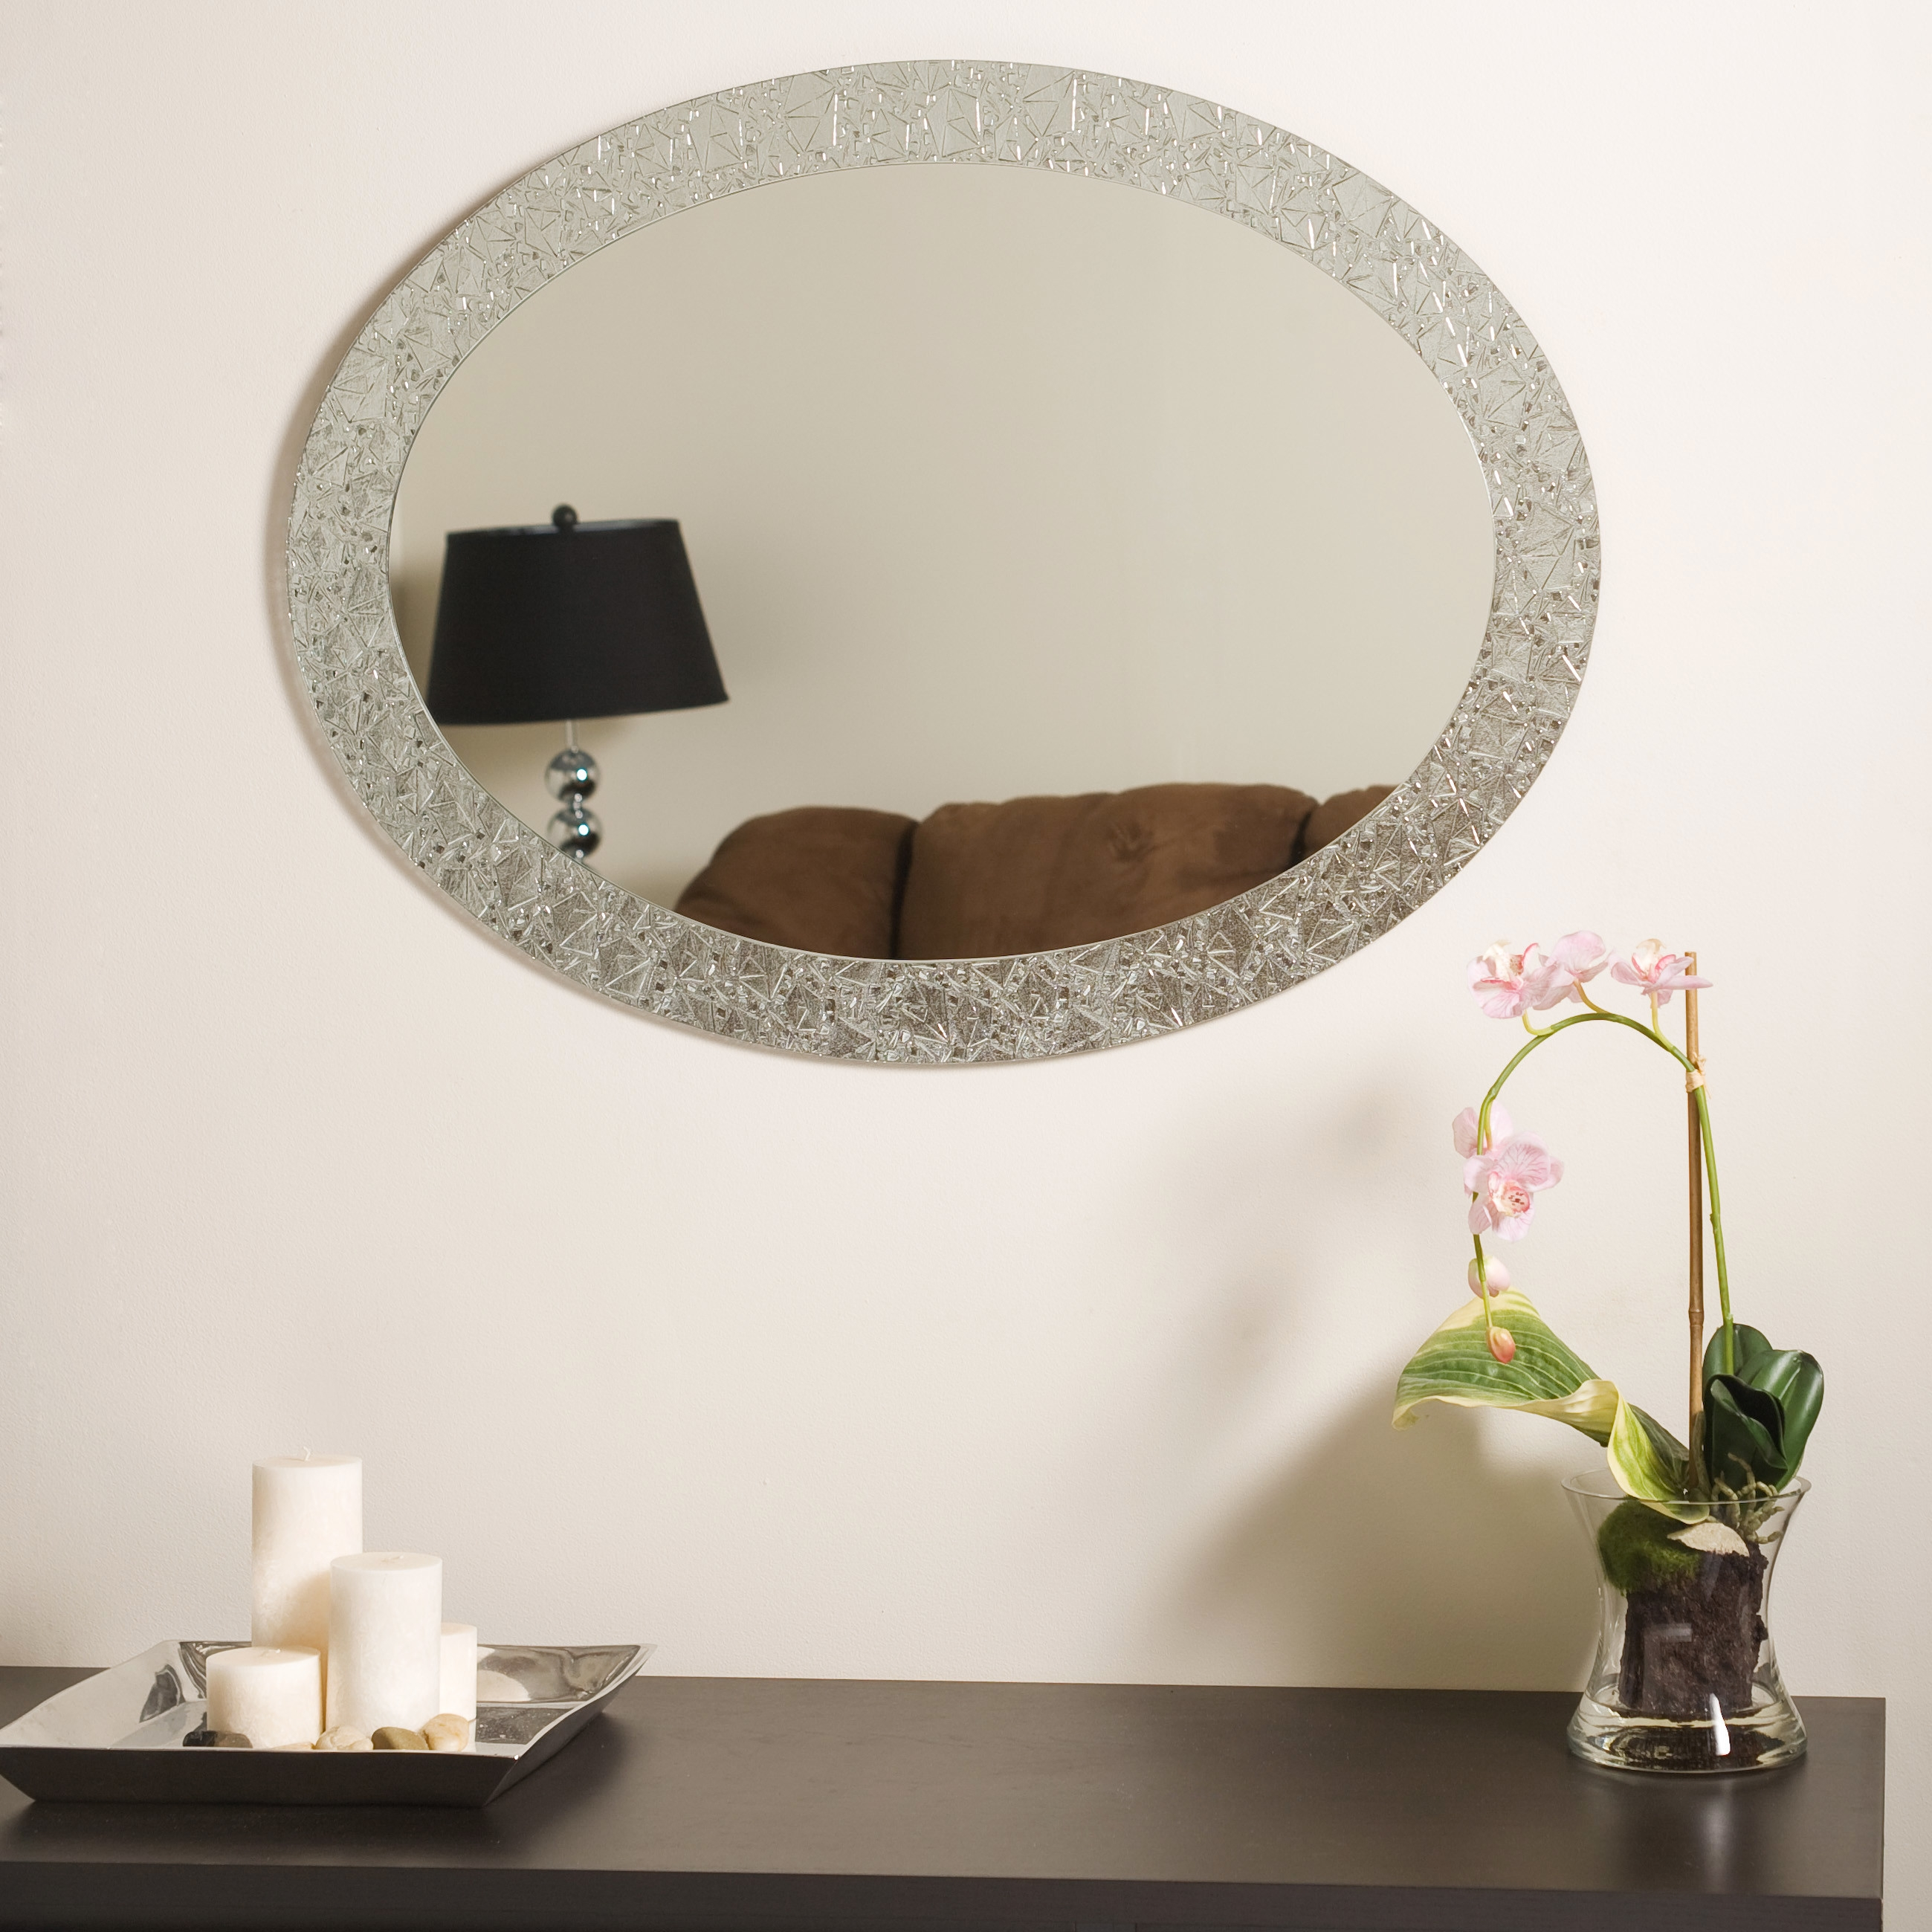 Simple Decoration Crystal Wall Mirror Sensational Design Inside Wall Mirror With Crystals (Image 11 of 15)